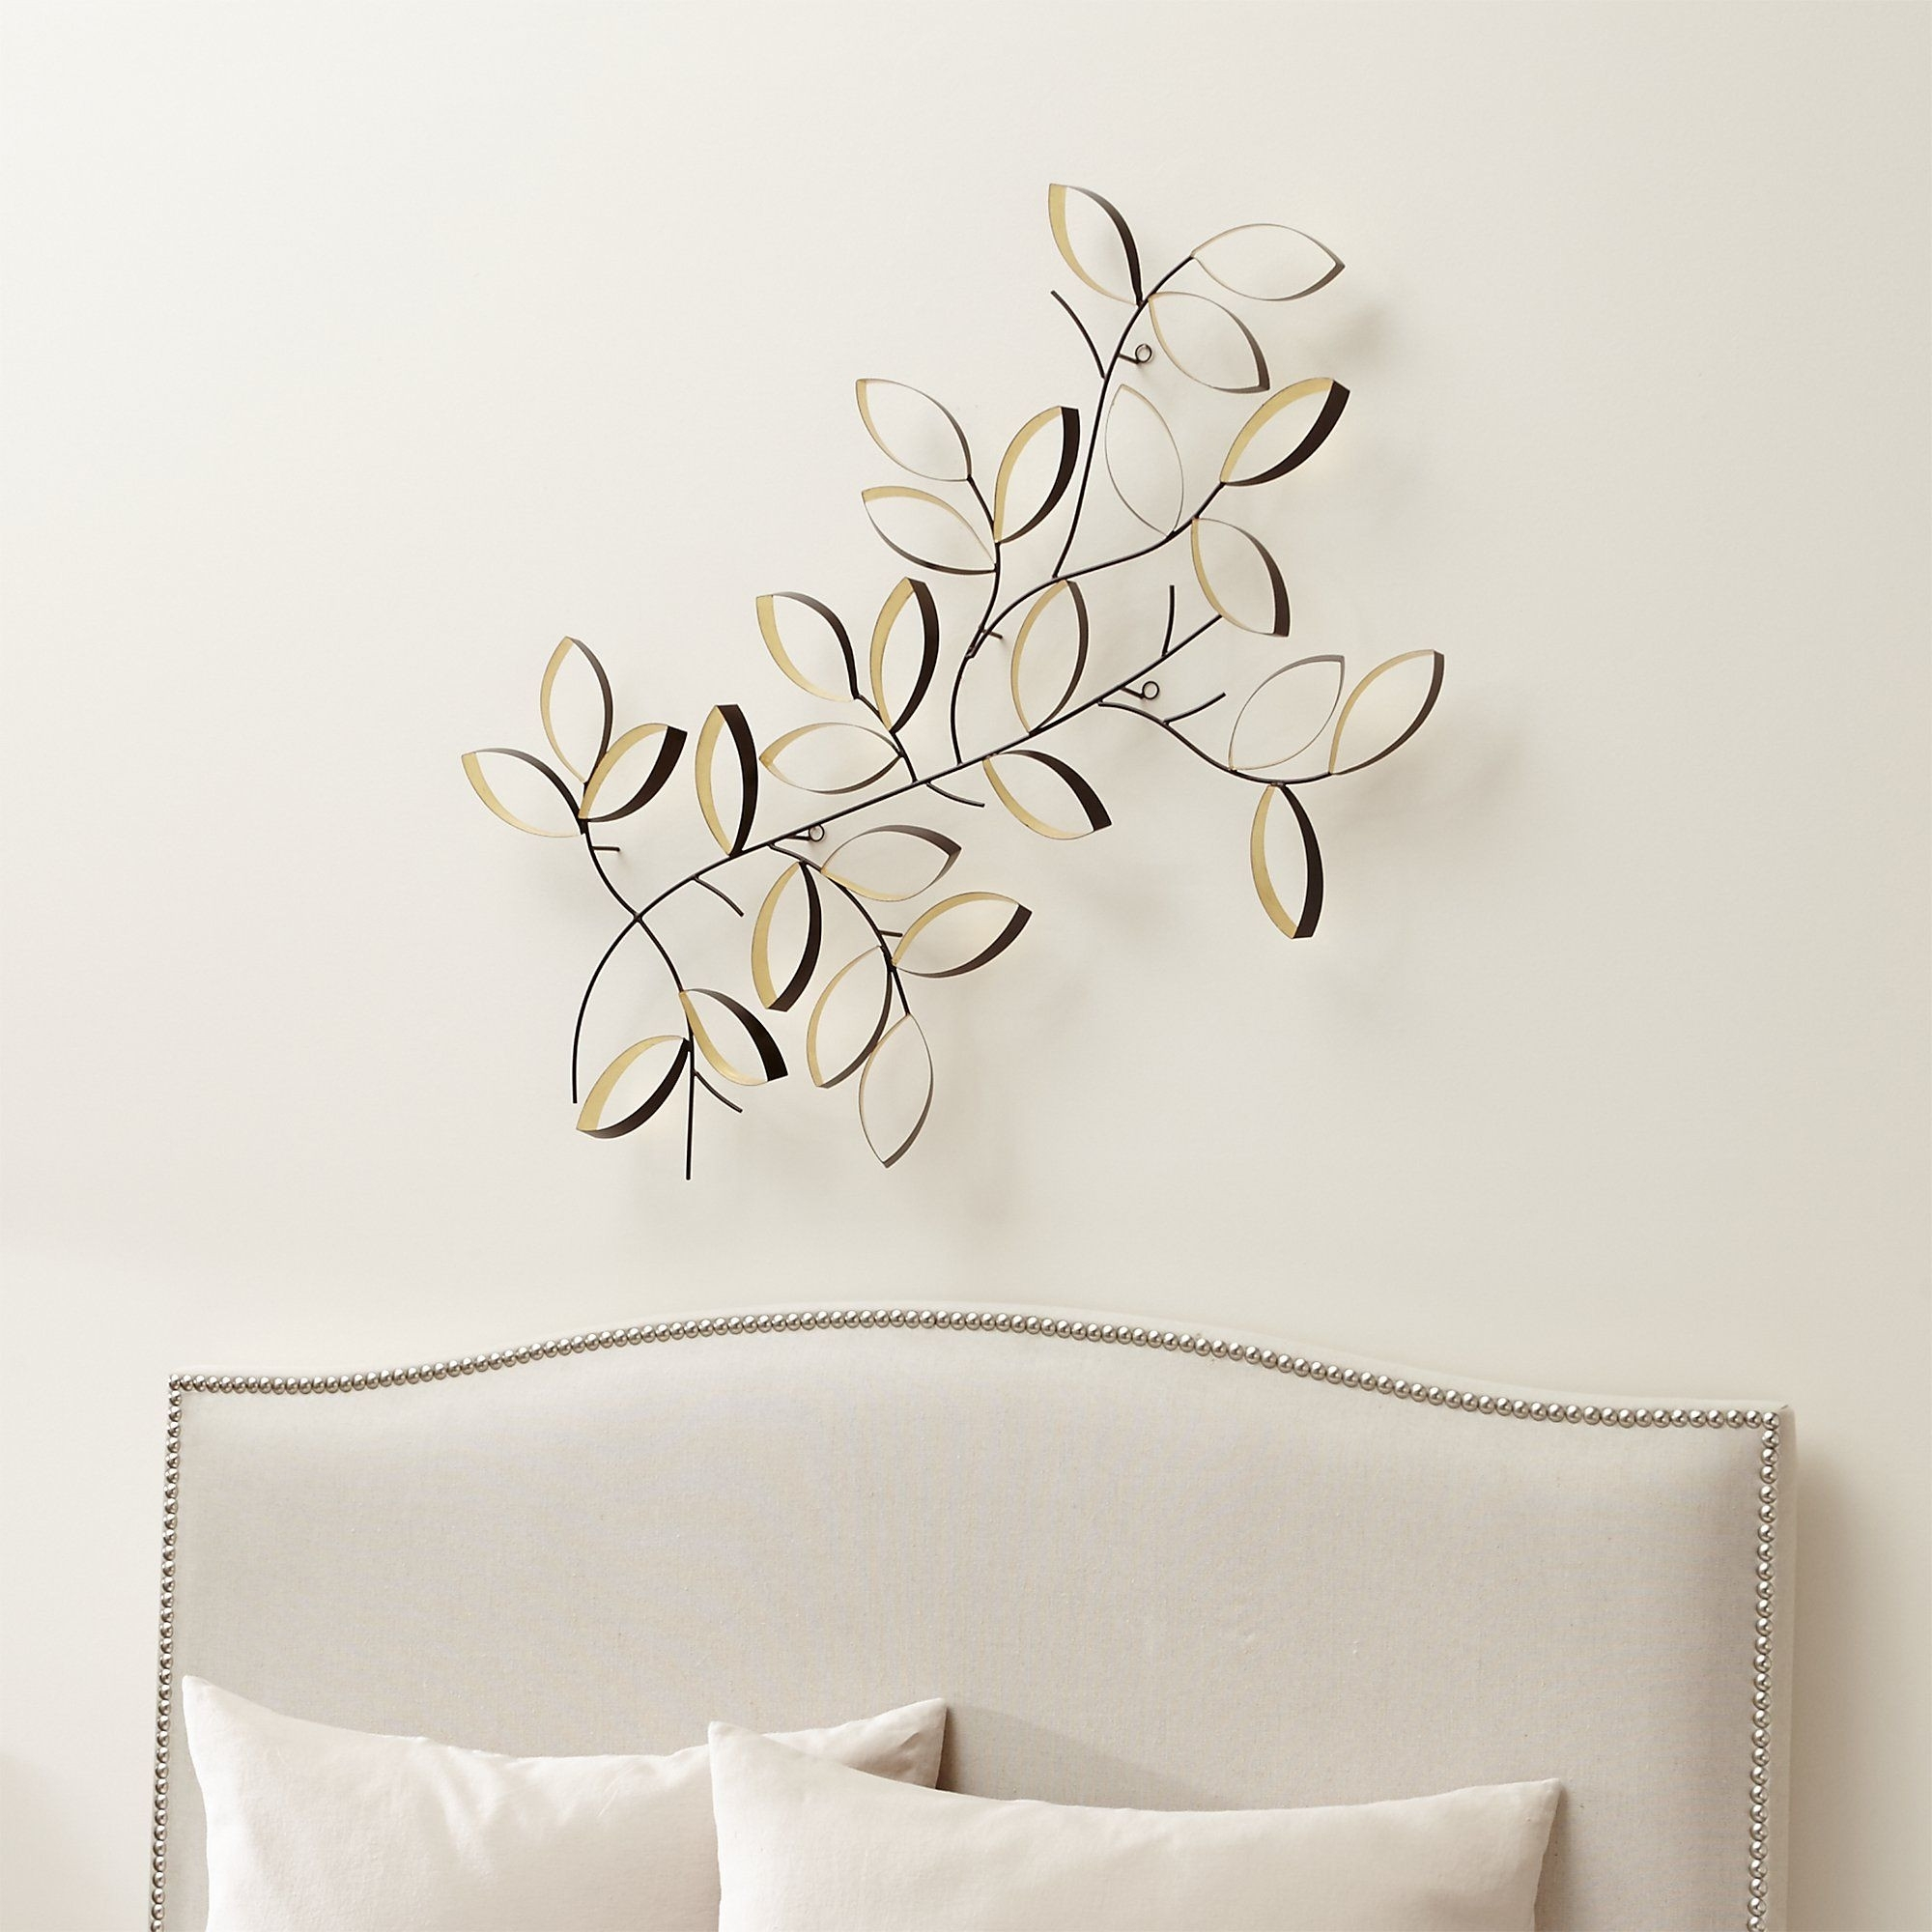 Crate And Barrel Decorative Pillows Best Of Golden Leaves Wall Art In Crate And Barrel Wall Art (View 9 of 20)